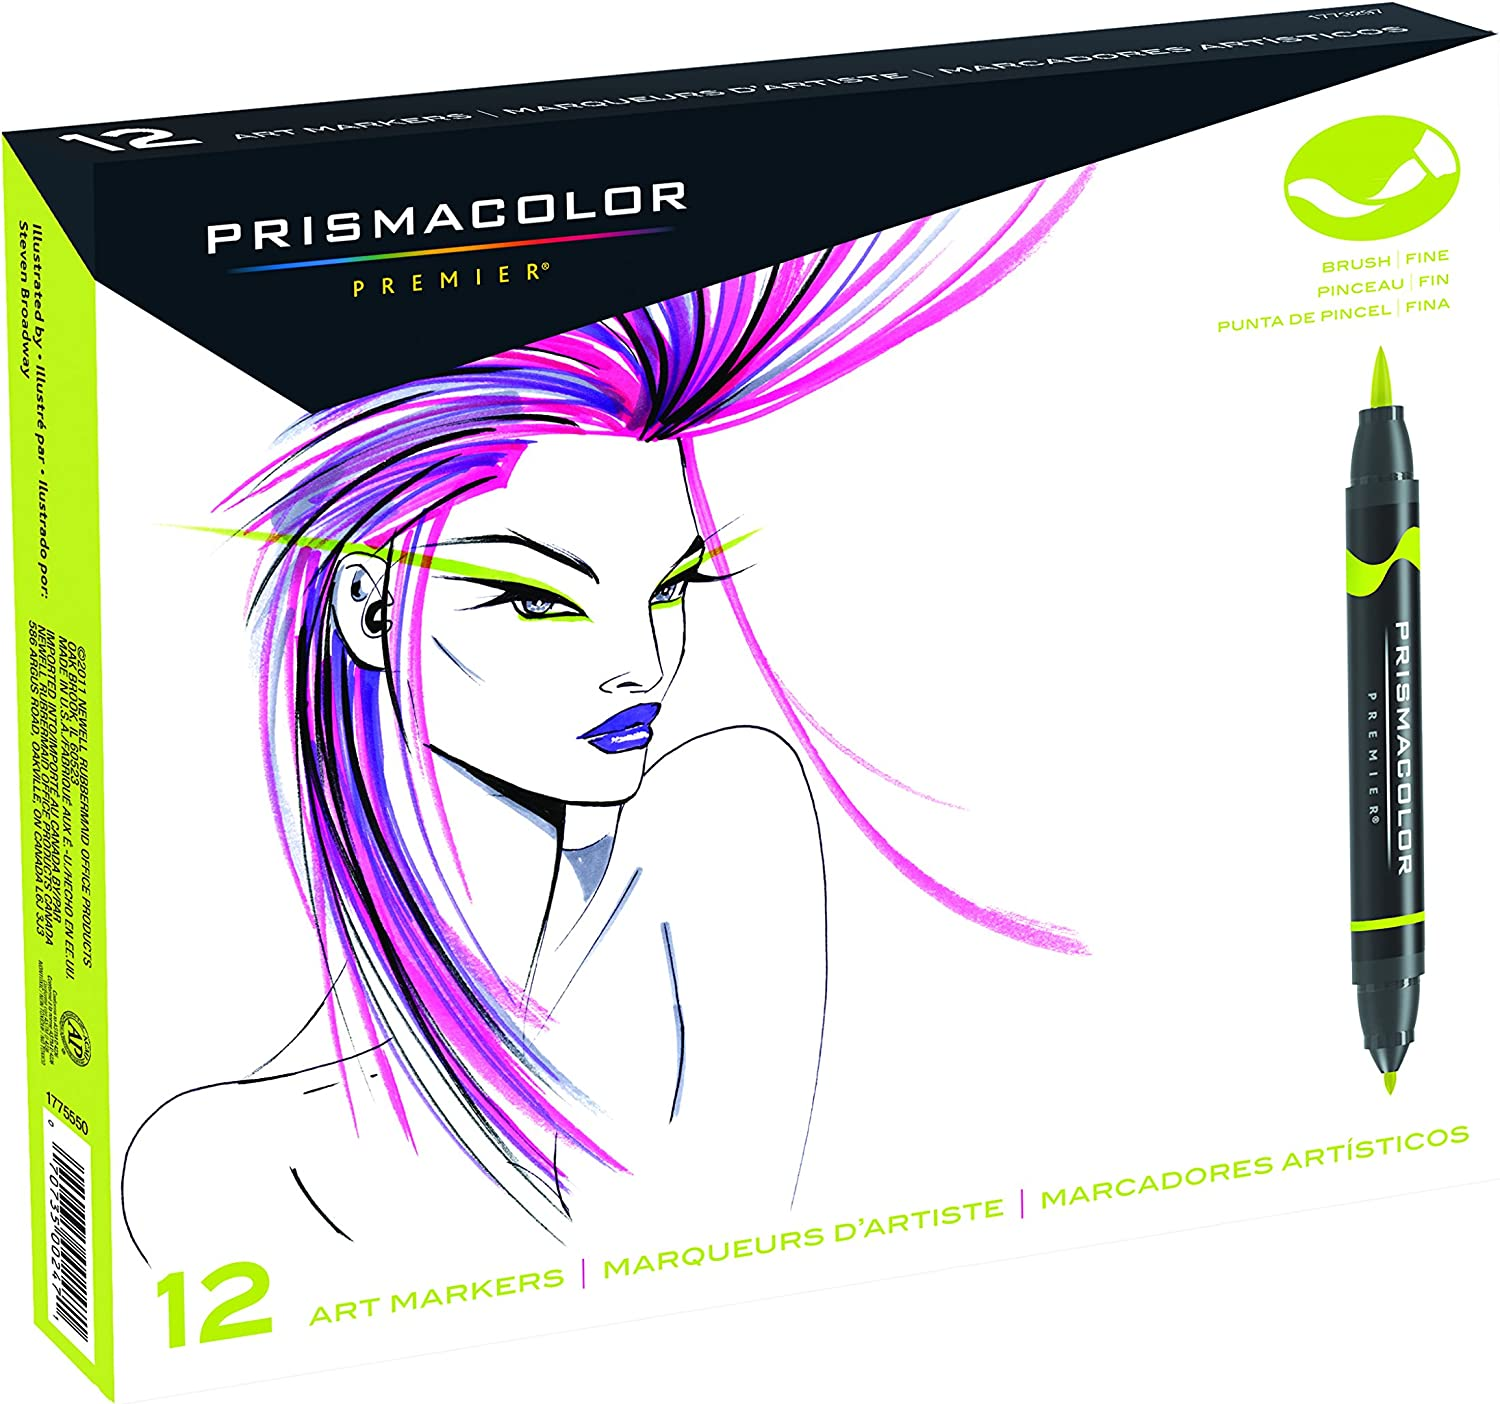 Prismacolor 1773297 Premier Double-Ended Art Markers, Fine and Brush Tip, 12-Count,Assorted Colors